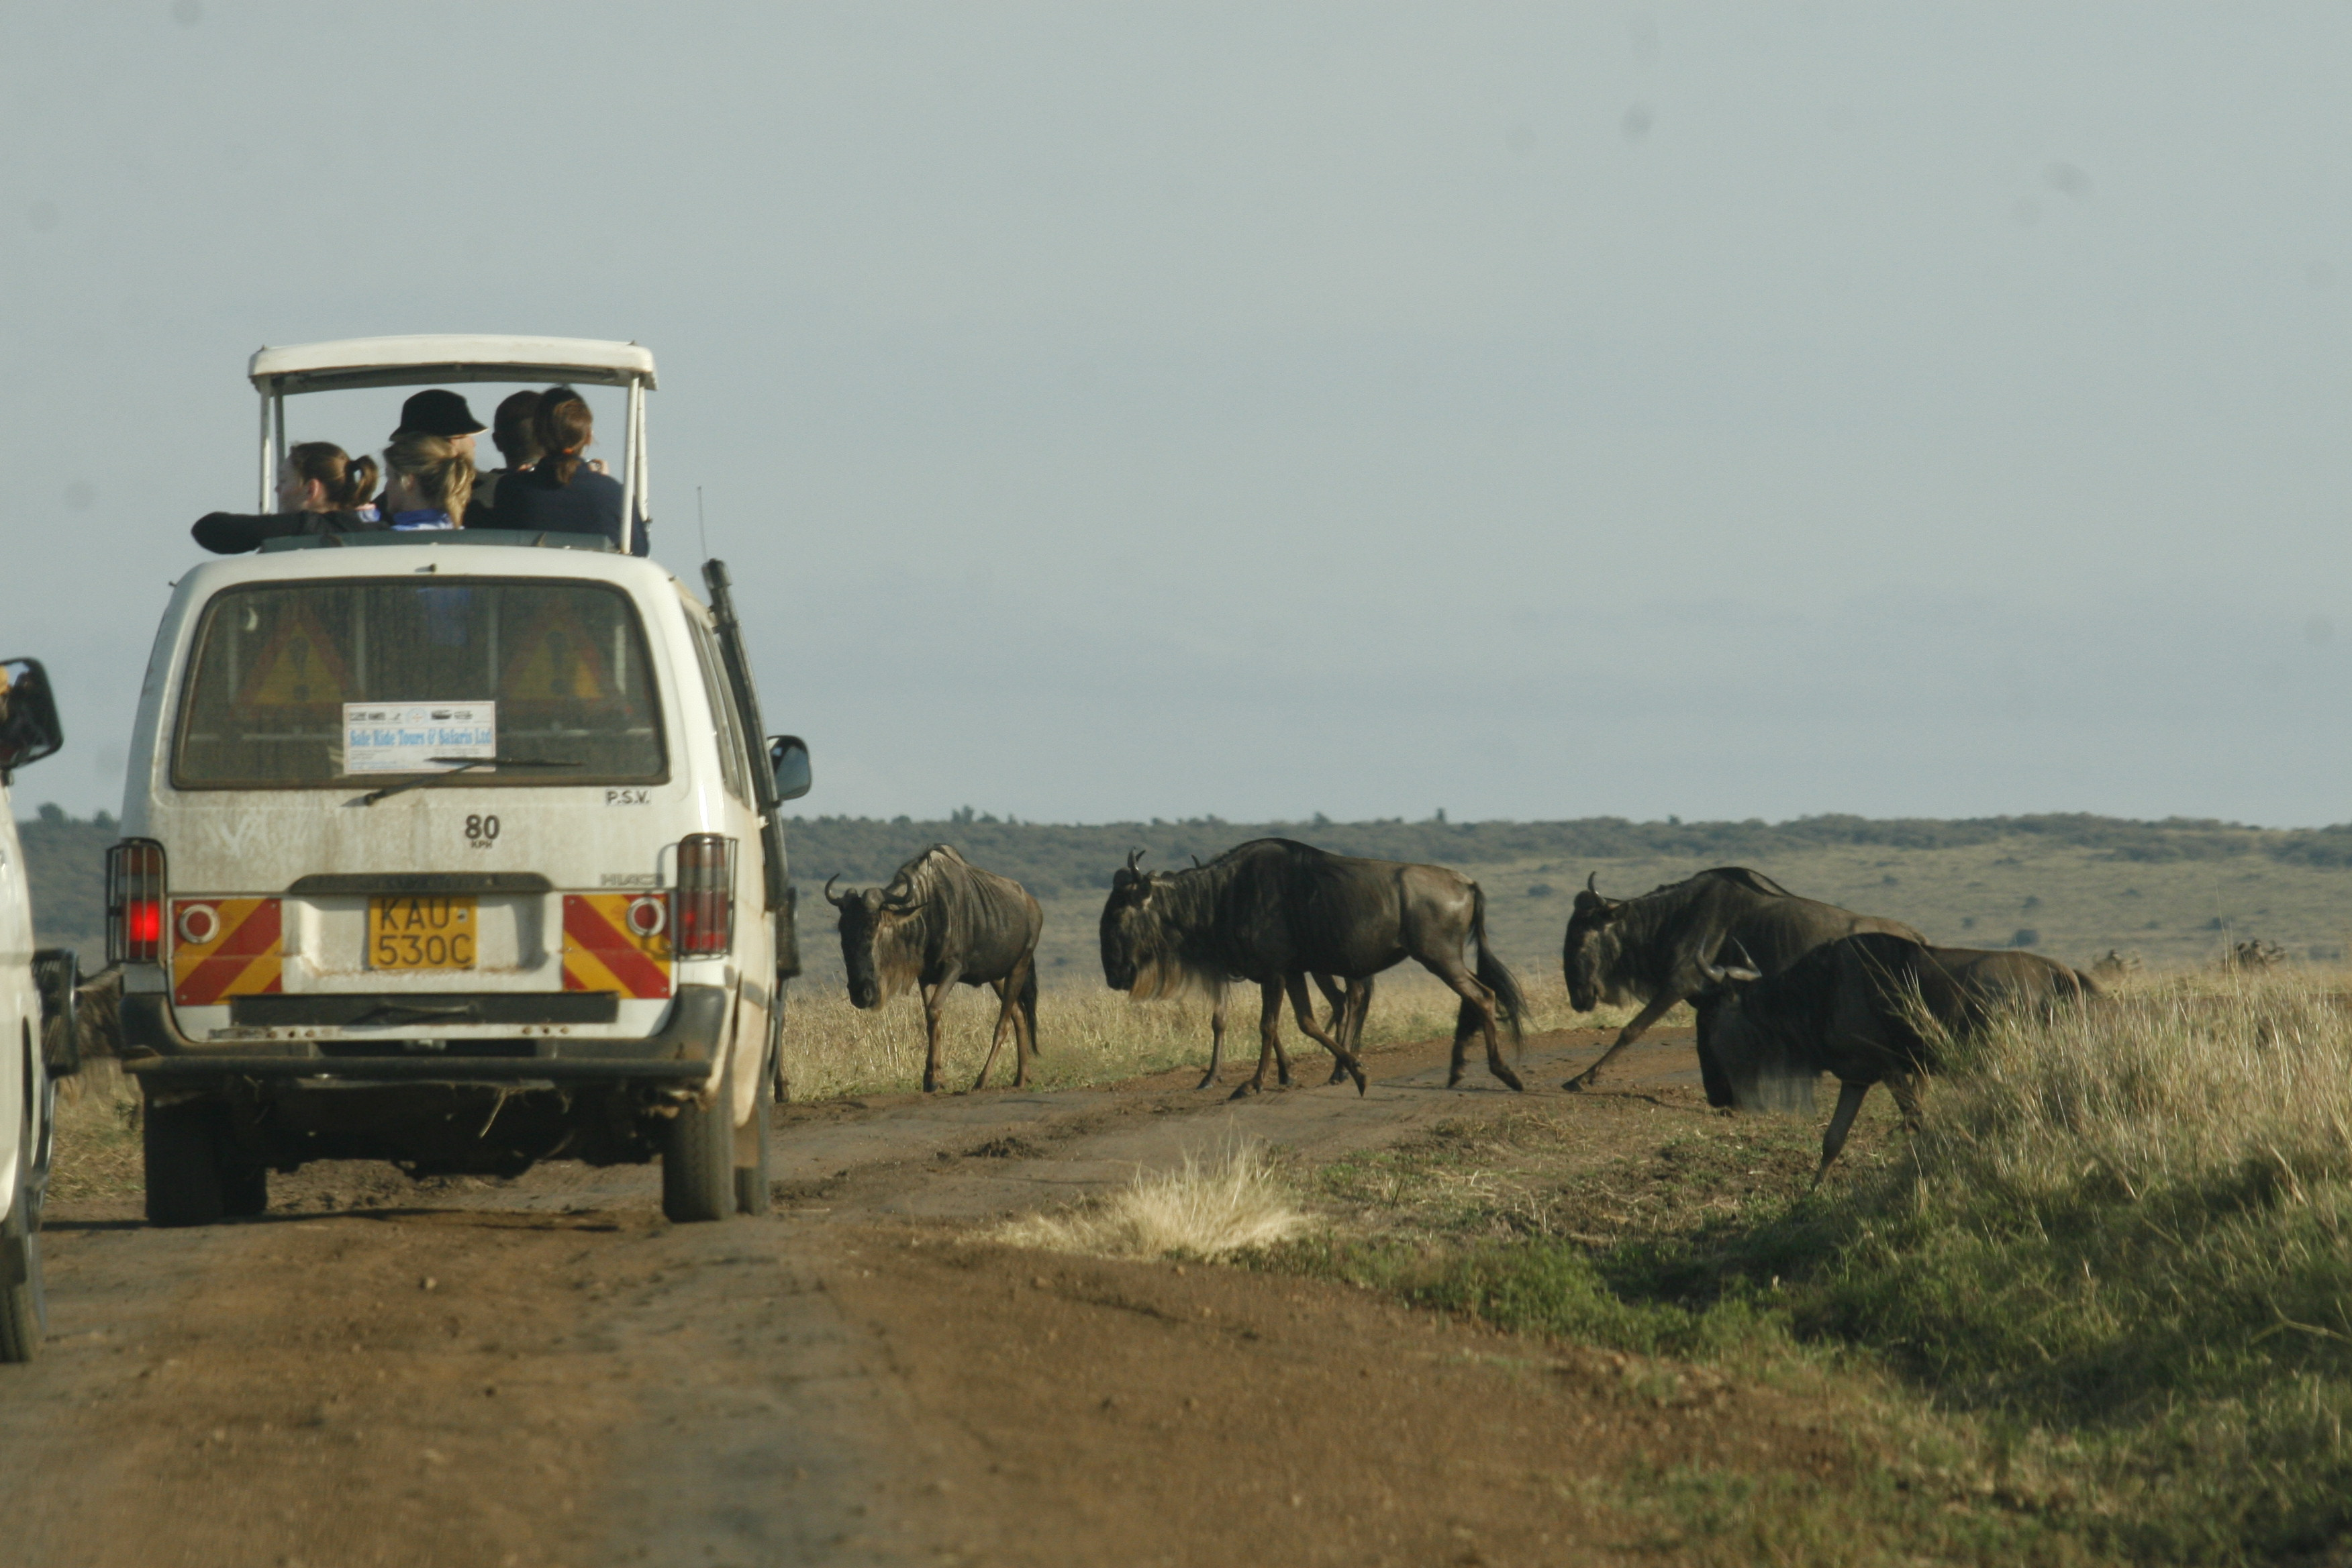 Safari in kenya, safari in africa, african safari